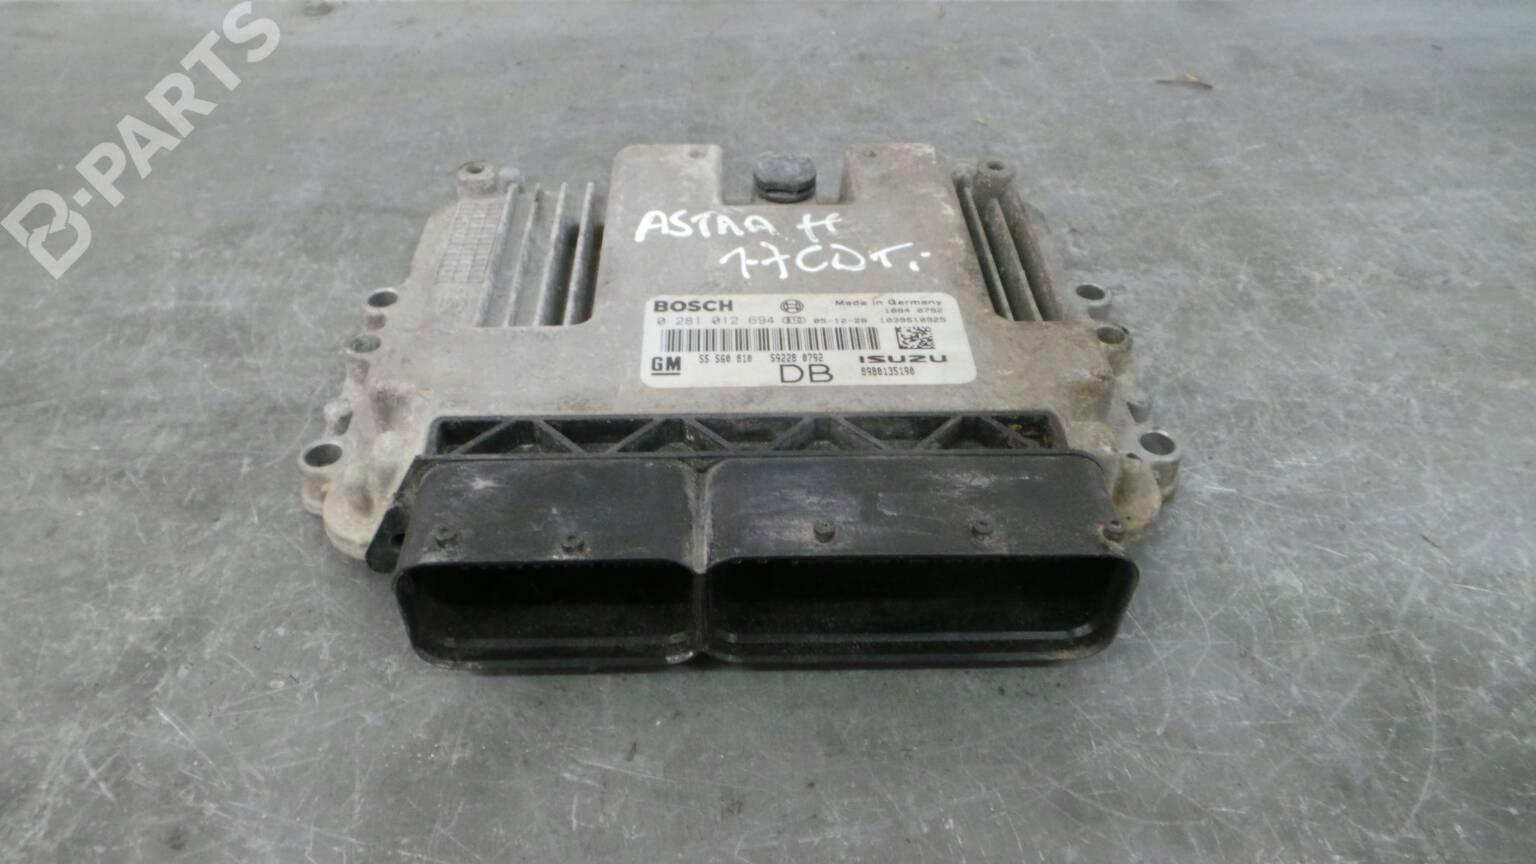 Engine Control Unit Ecu Opel Astra H A04 17 Cdti L48 58916 Water In Fuse Box 0281012694 8980135190